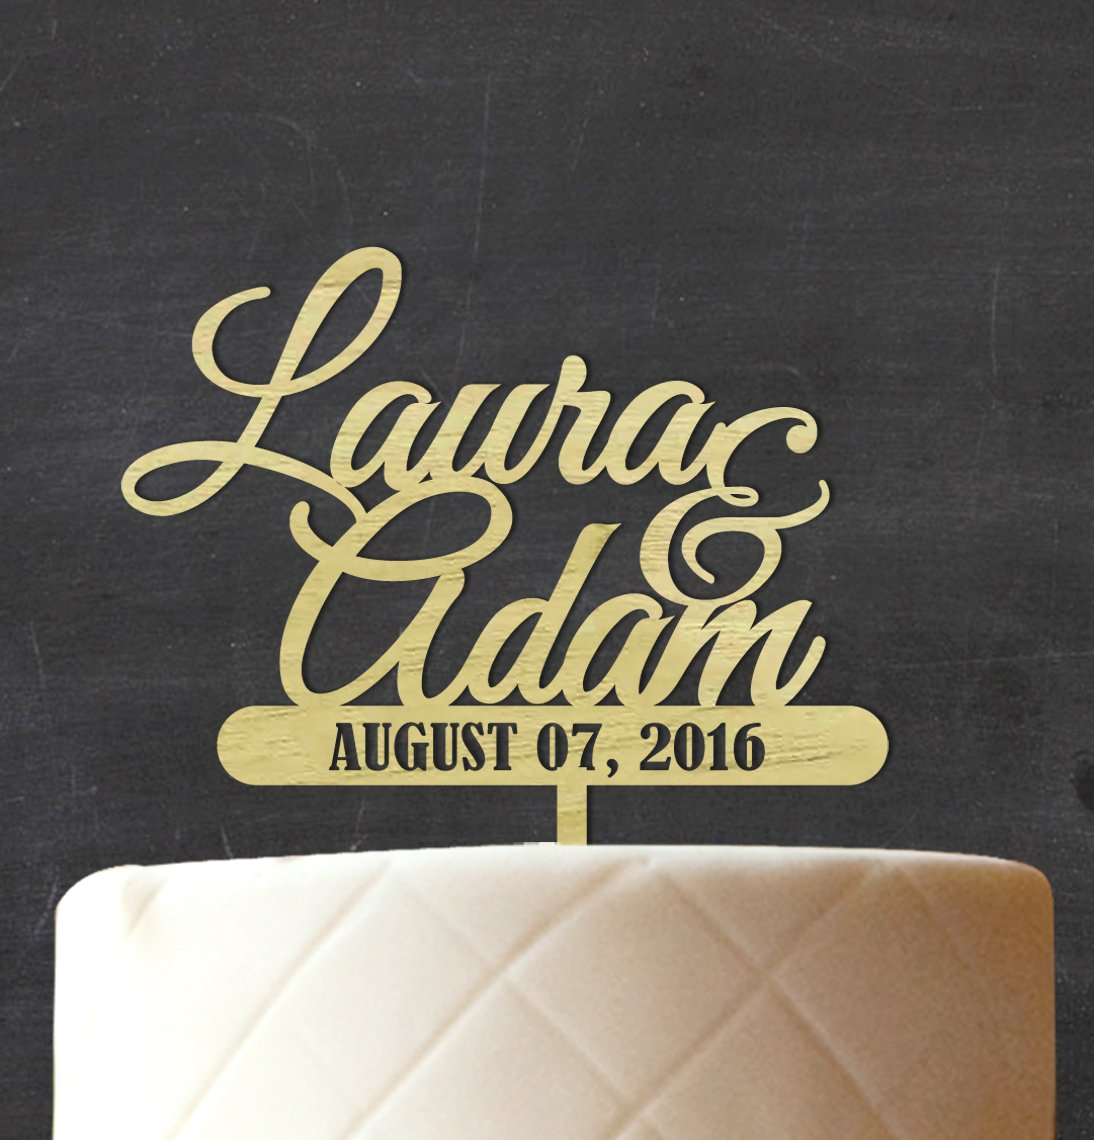 Darling Souvenir Custom Wedding Wood Engraved Cake Topper Persoanlized Names Cake Topper Cake Decoration 7''-8'' Inches Wide